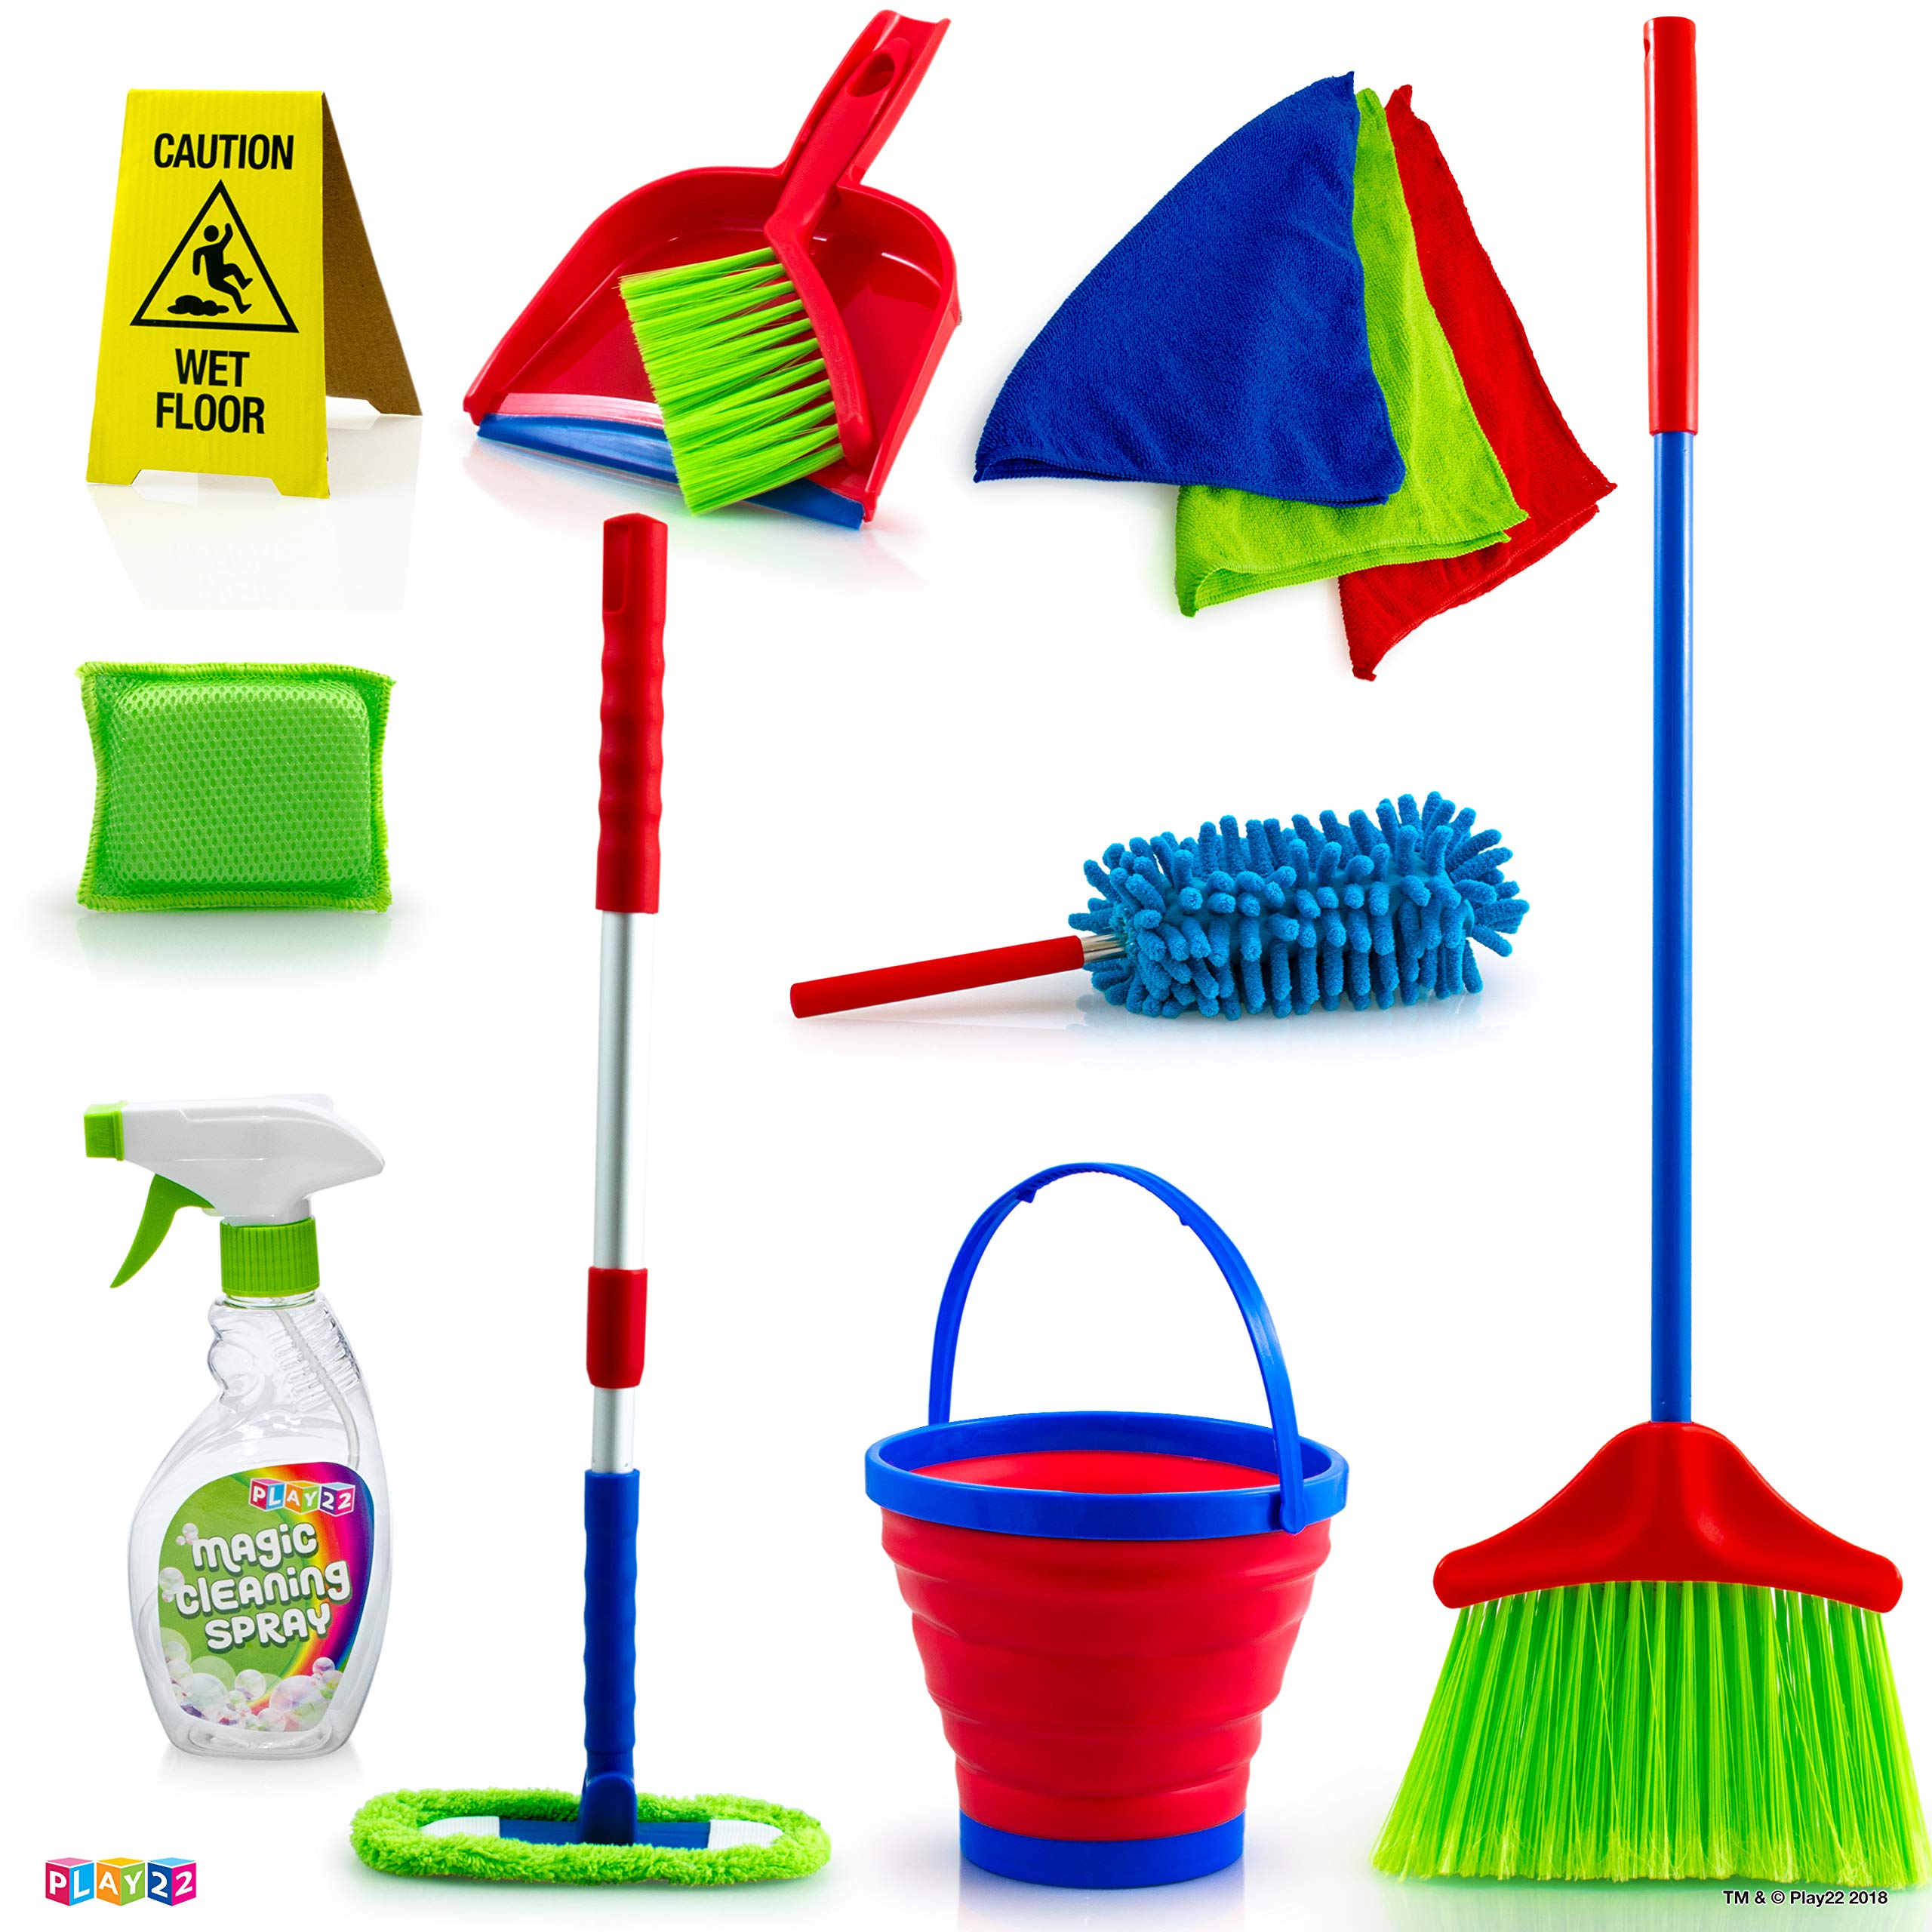 Kids Cleaning Set 12 Piece - Toy Cleaning Set Includes Broom, Mop, Brush, Dust Pan, Duster, Sponge, Clothes, Spray, Bucket, Caution Sign, - Toy Kitchen Toddler Cleaning Set - Original - by Play22